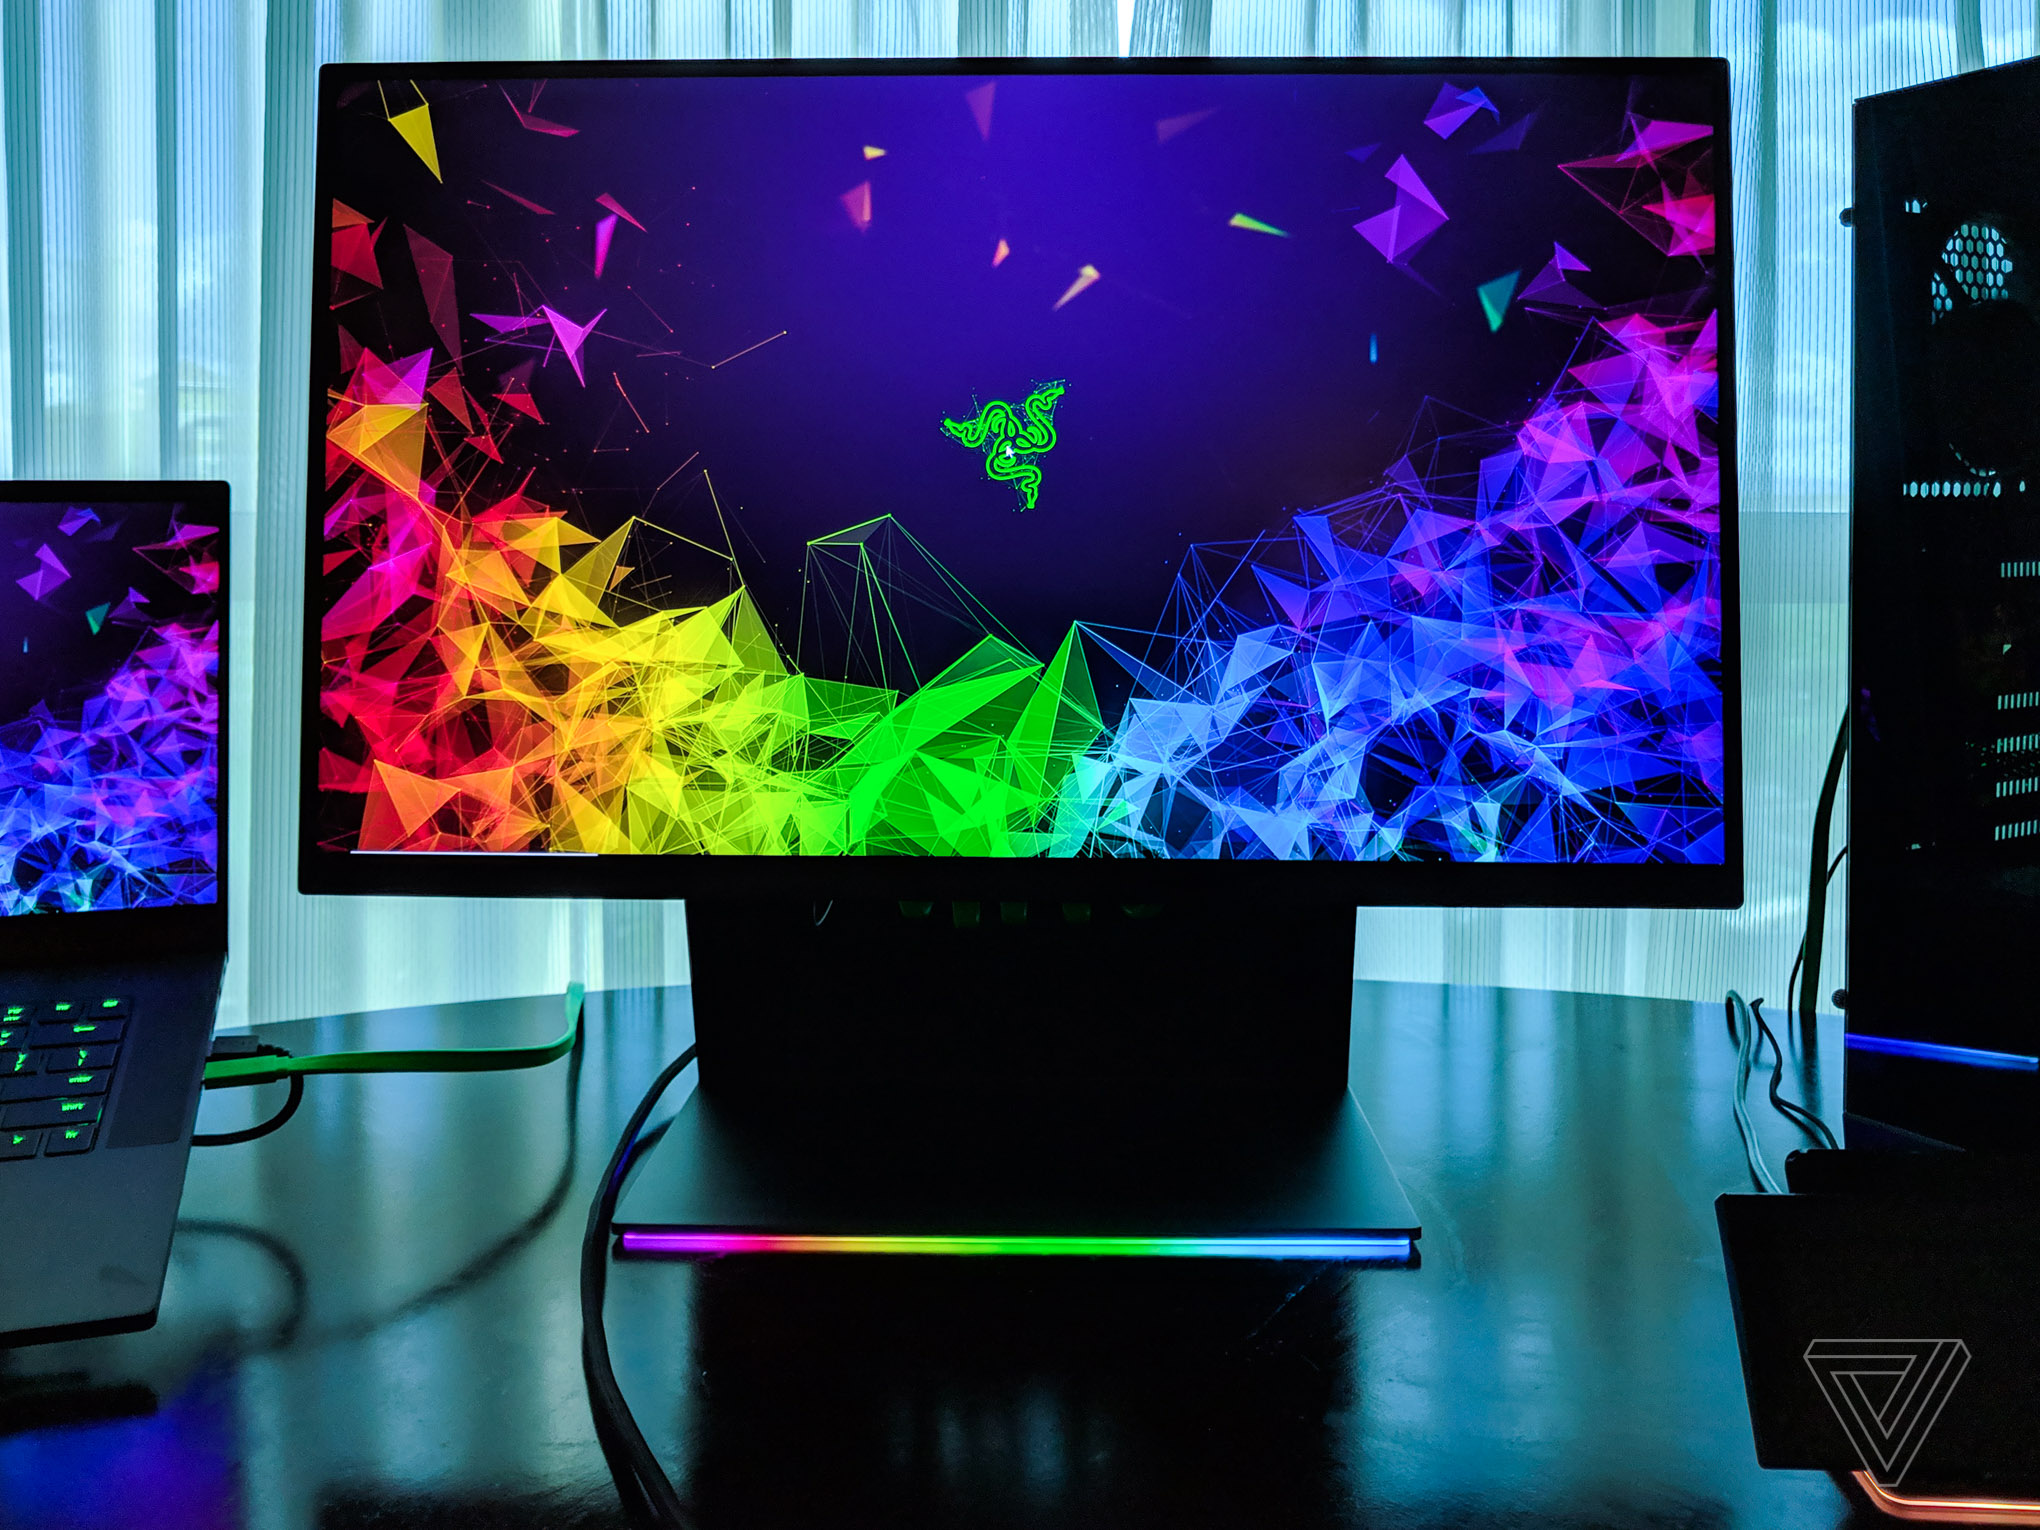 Razer gets into the gaming monitor game with the 27-inch Raptor